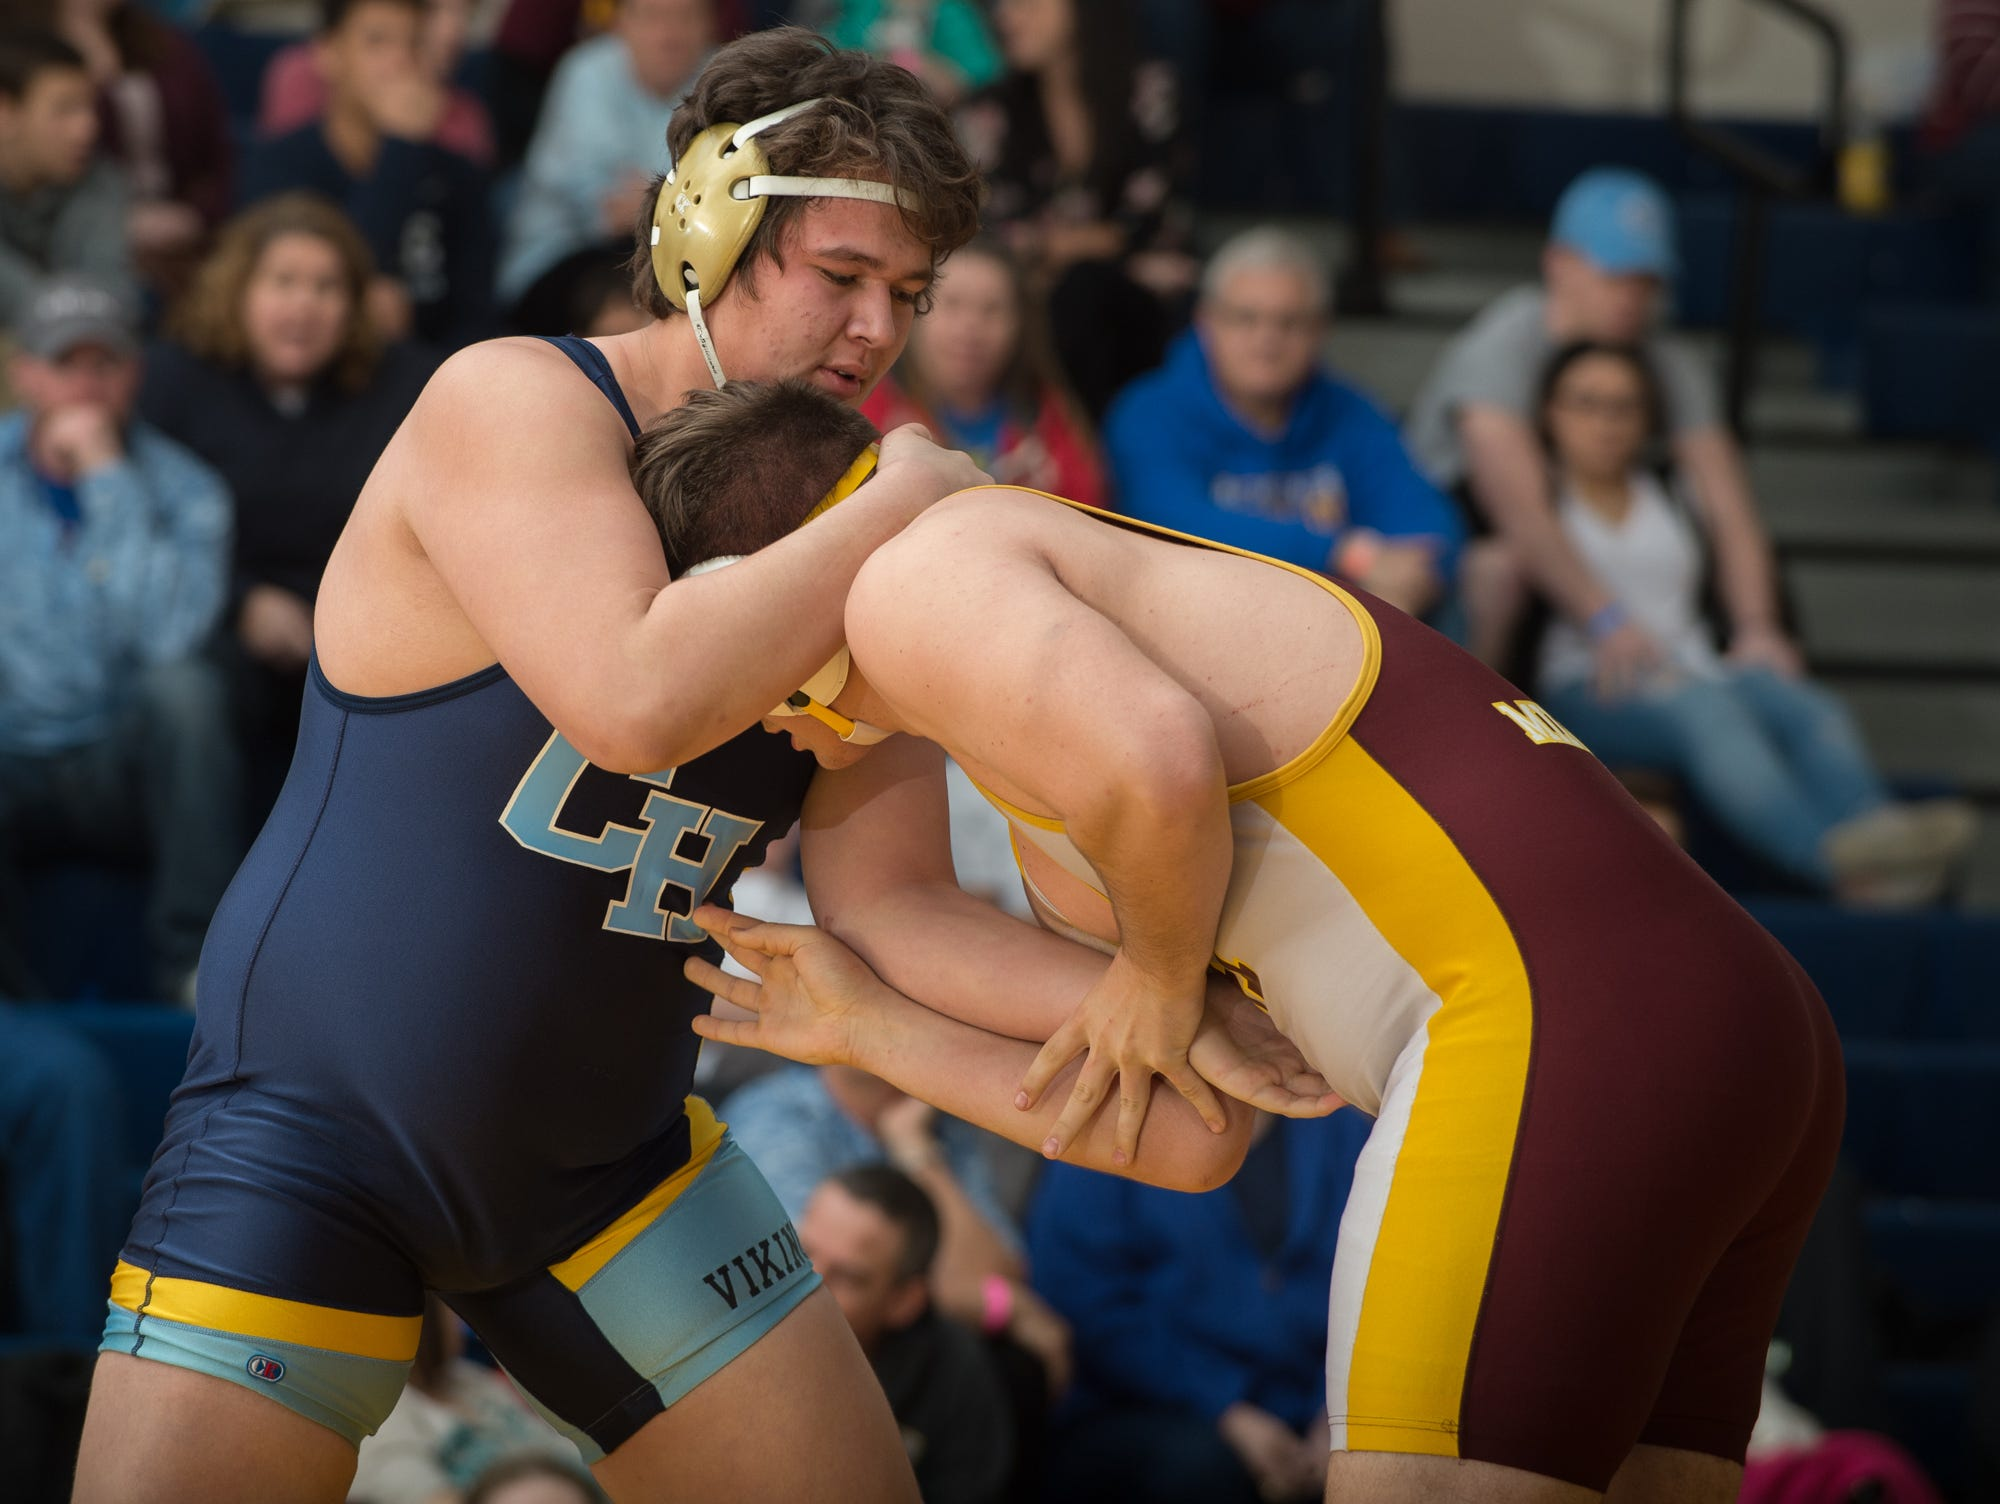 Cape Henlopen's Zach Flores, left, and Milford's Bryan Wynes battle for position in the 285 pound championship match at the Henlopen Conference wrestling tournament at Sussex Central High School.